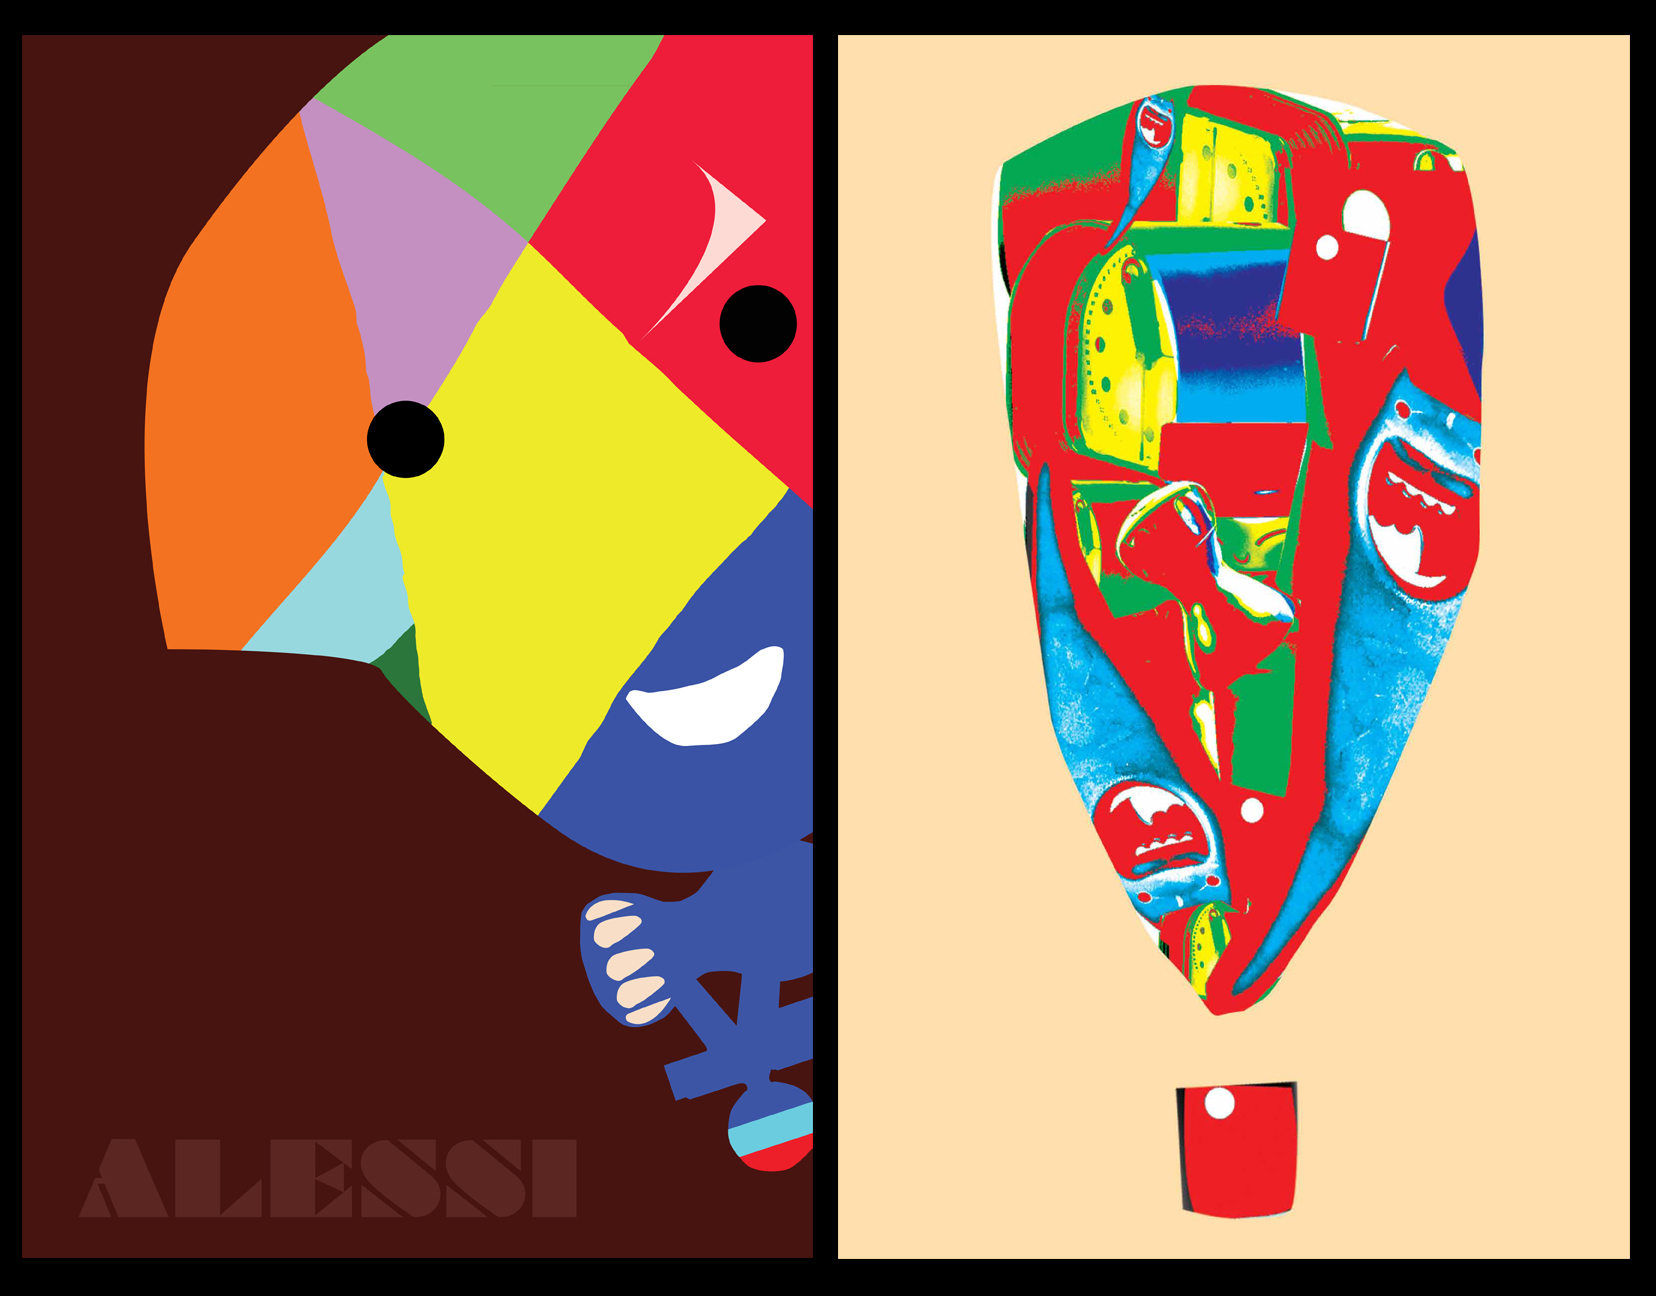 ALESSI Poster